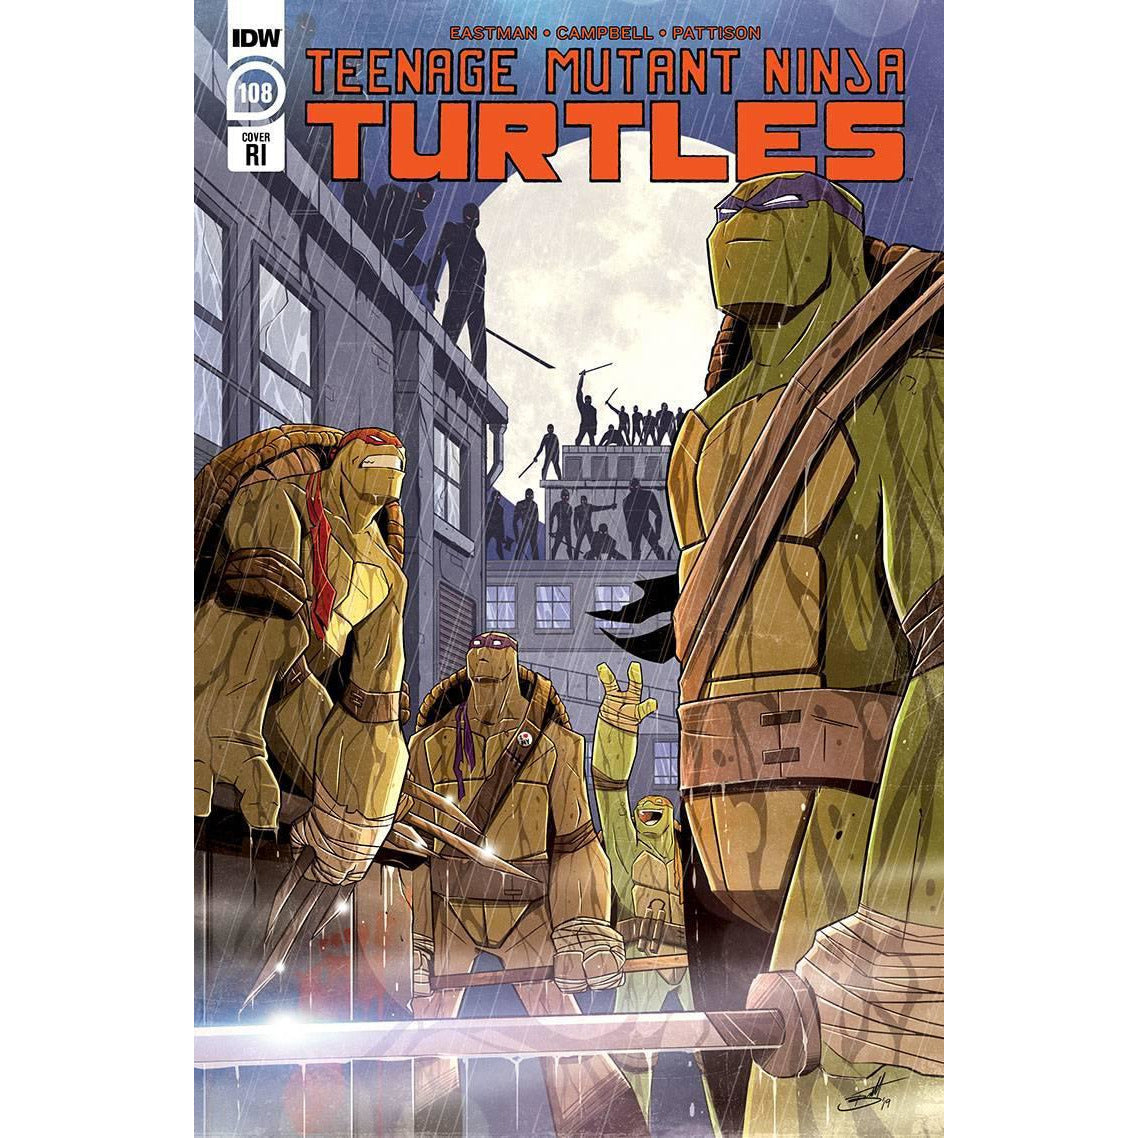 TMNT ONGOING #108 10 COPY INCV BROOKS